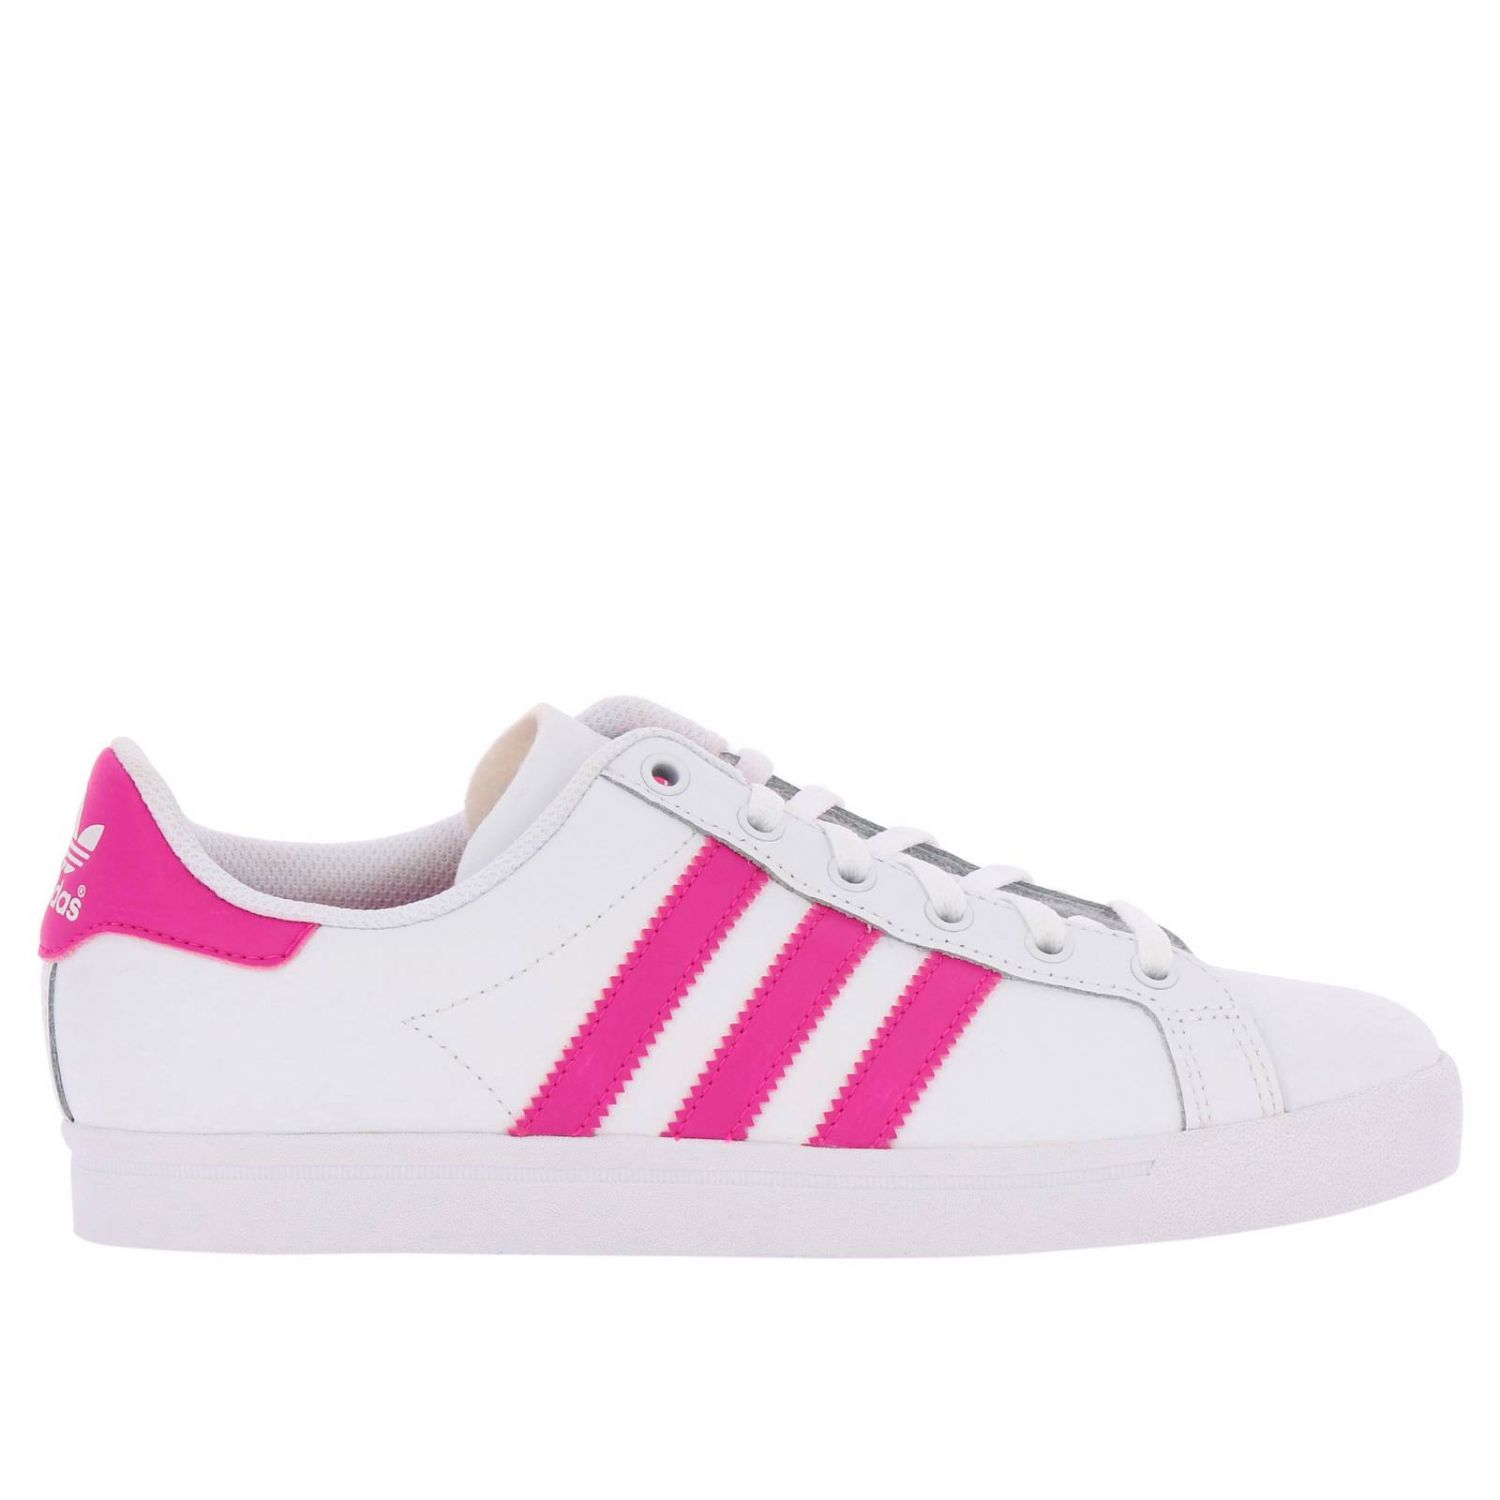 Scarpe Adidas Originals: Sneakers Coast star J Adidas Originals in pelle con bande a contrasto bianco 1